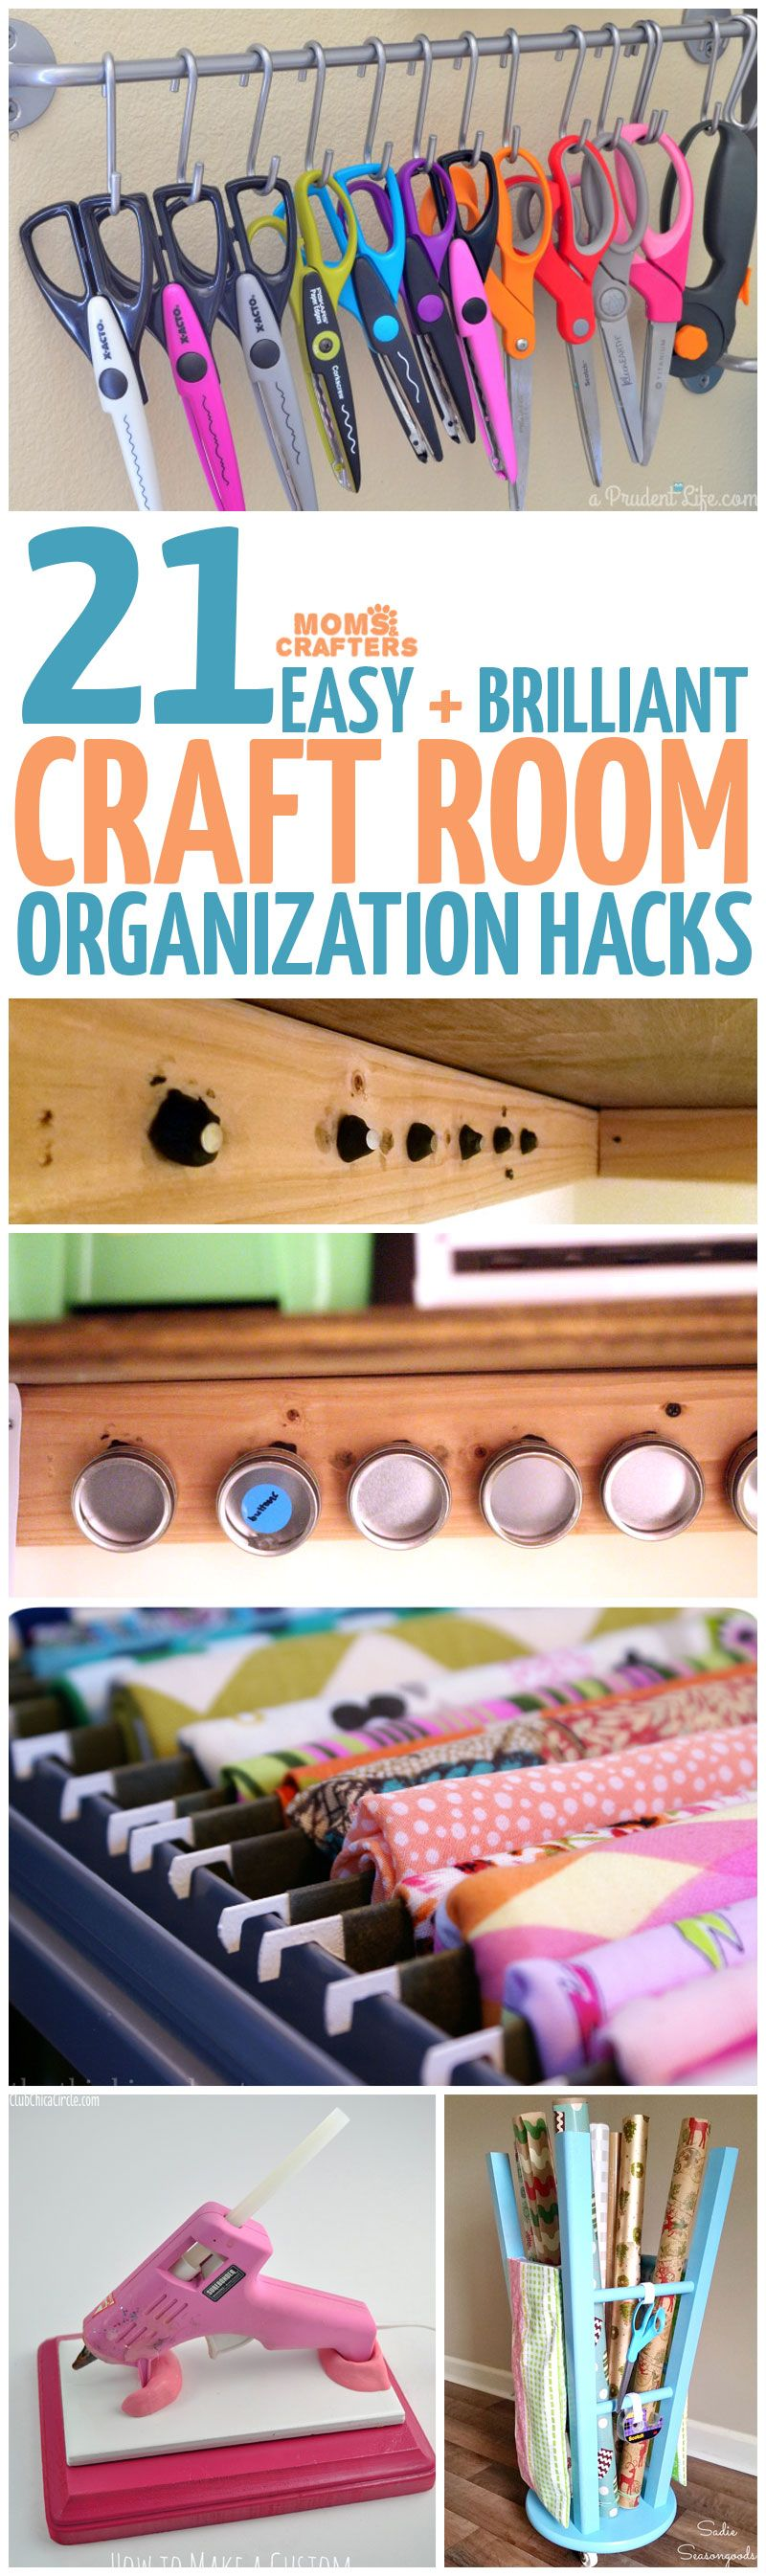 10 Beyond Clever Craft Room Organization Ideas | Clever ...